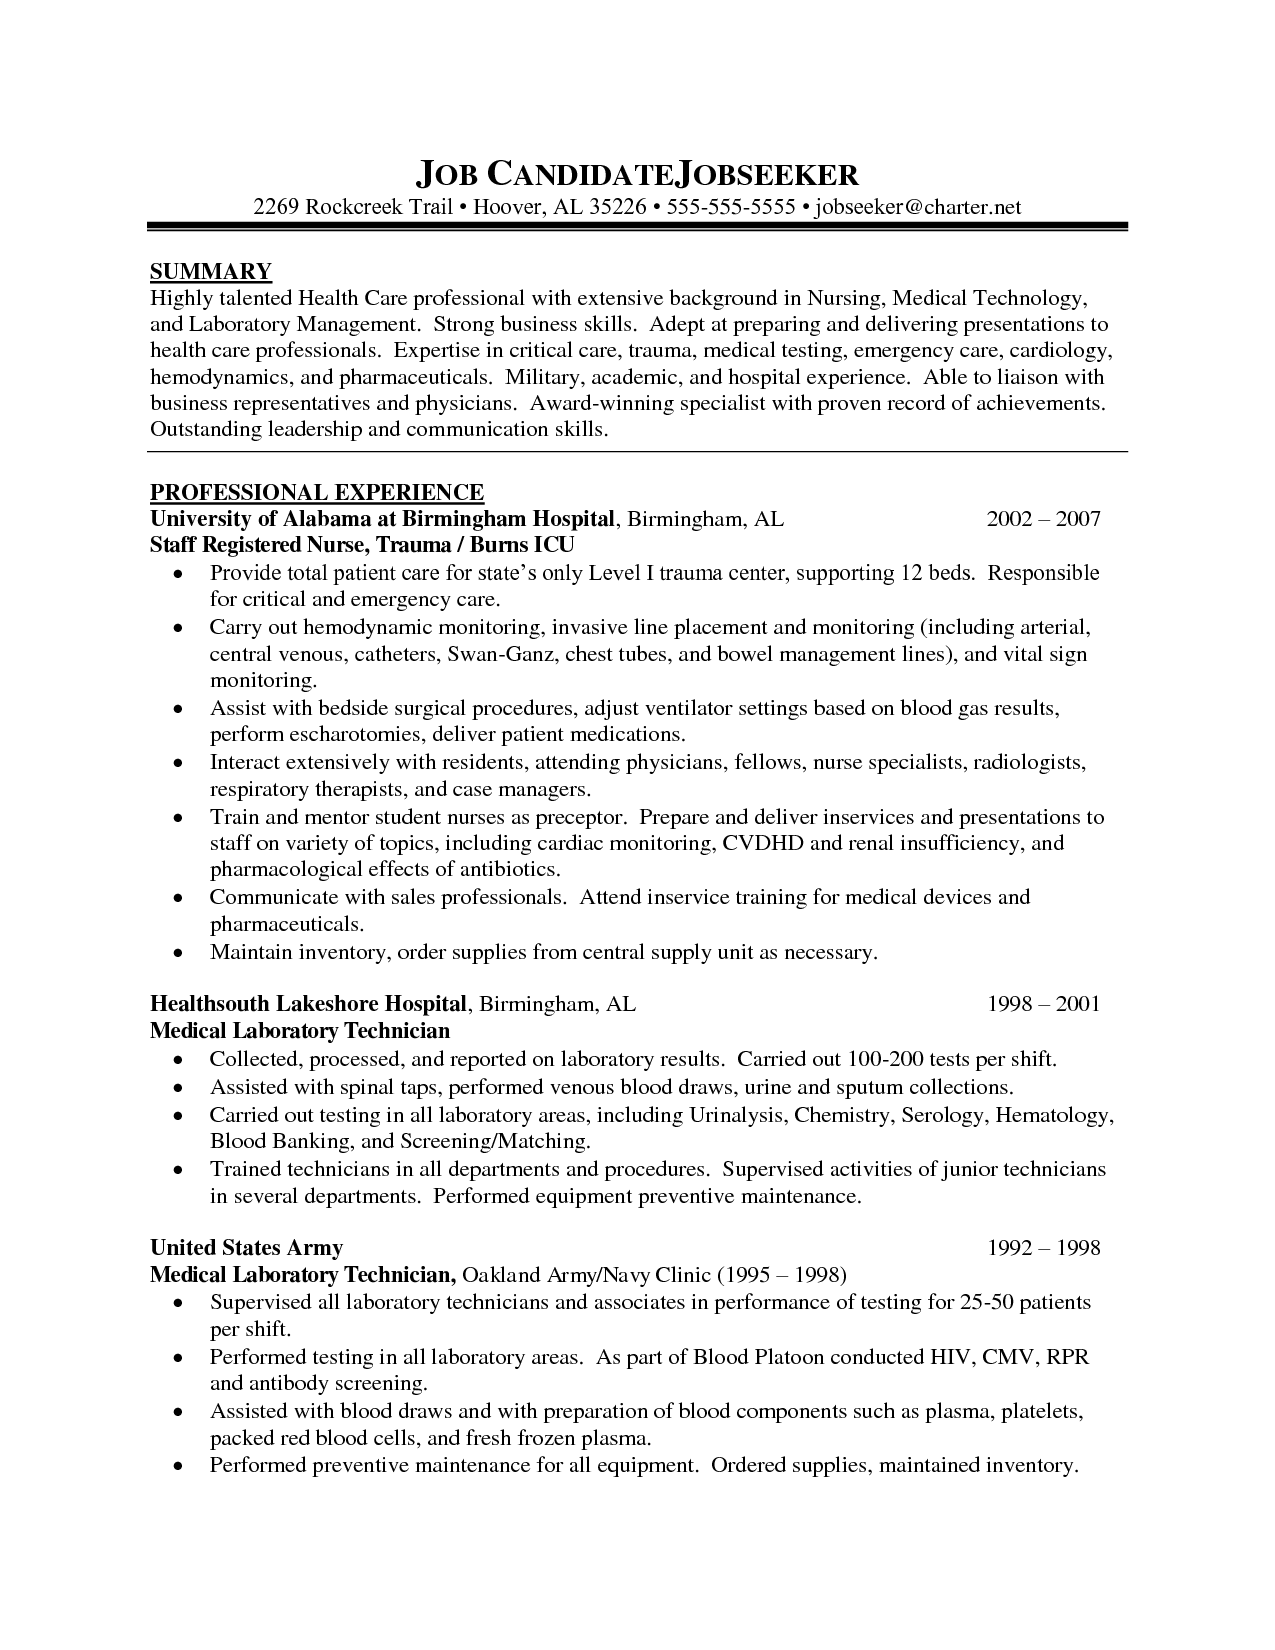 Oncology Nurse Resume Oncology Nurse Resume Objective  Httpwwwresumecareer